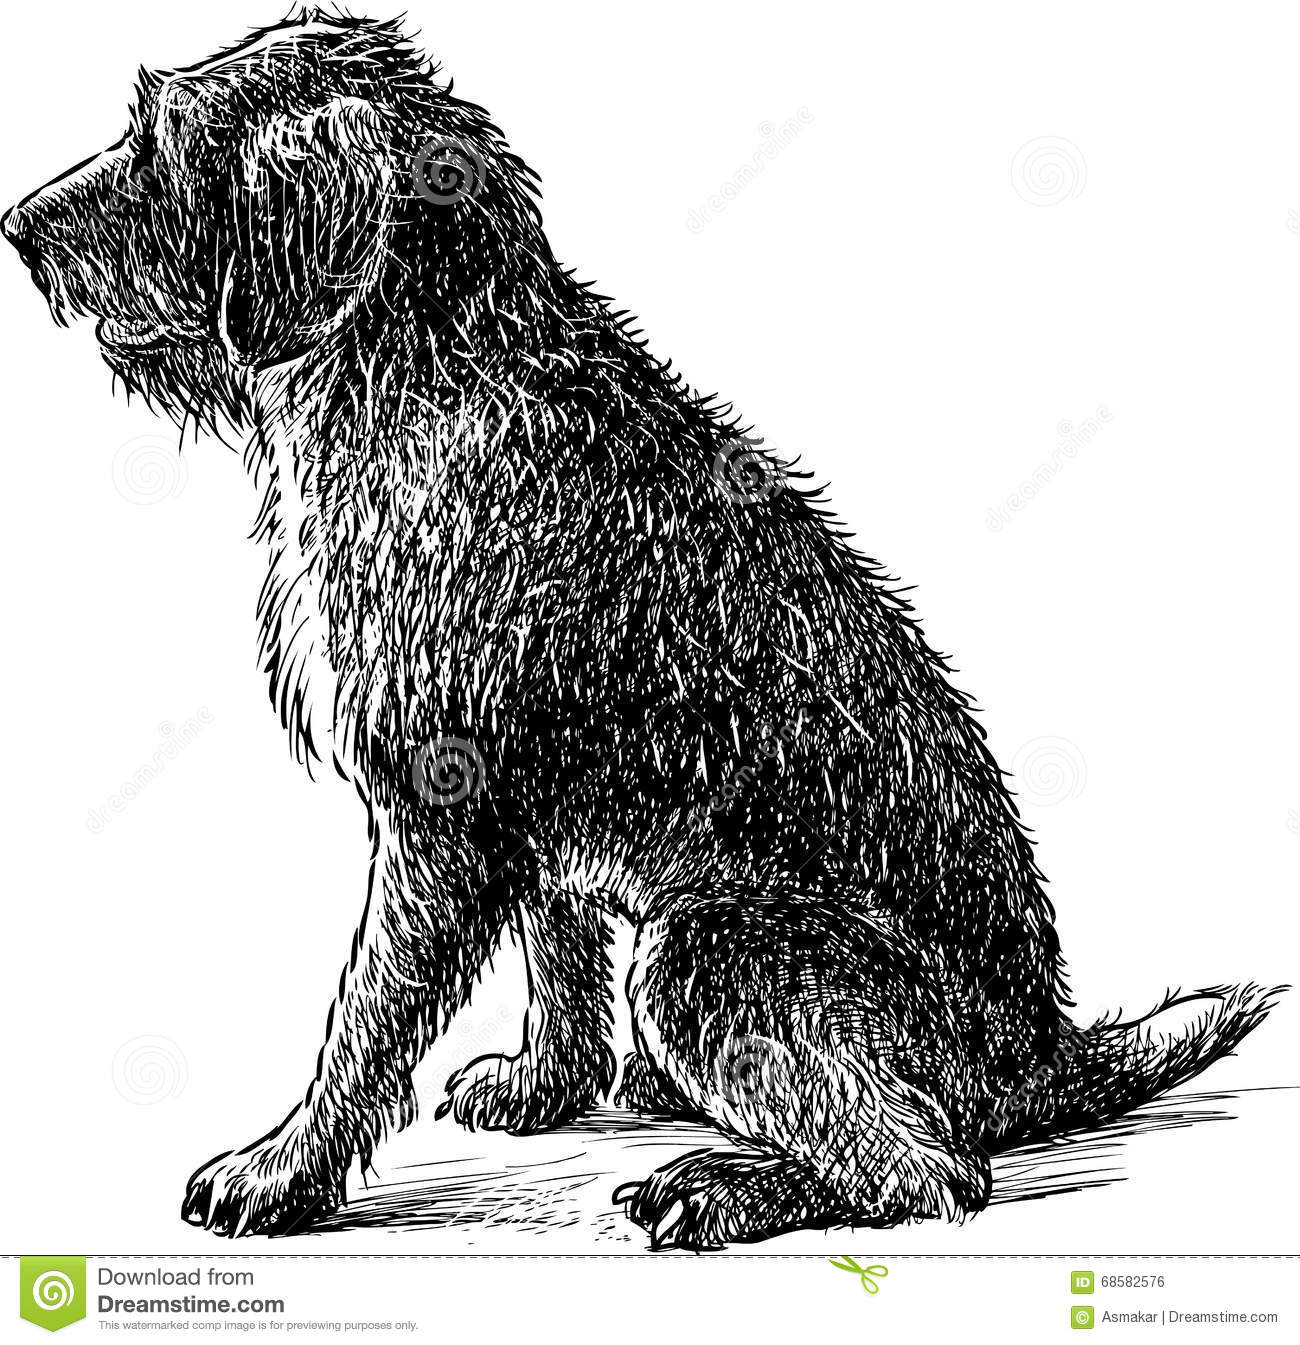 how to draw a shaggy dog